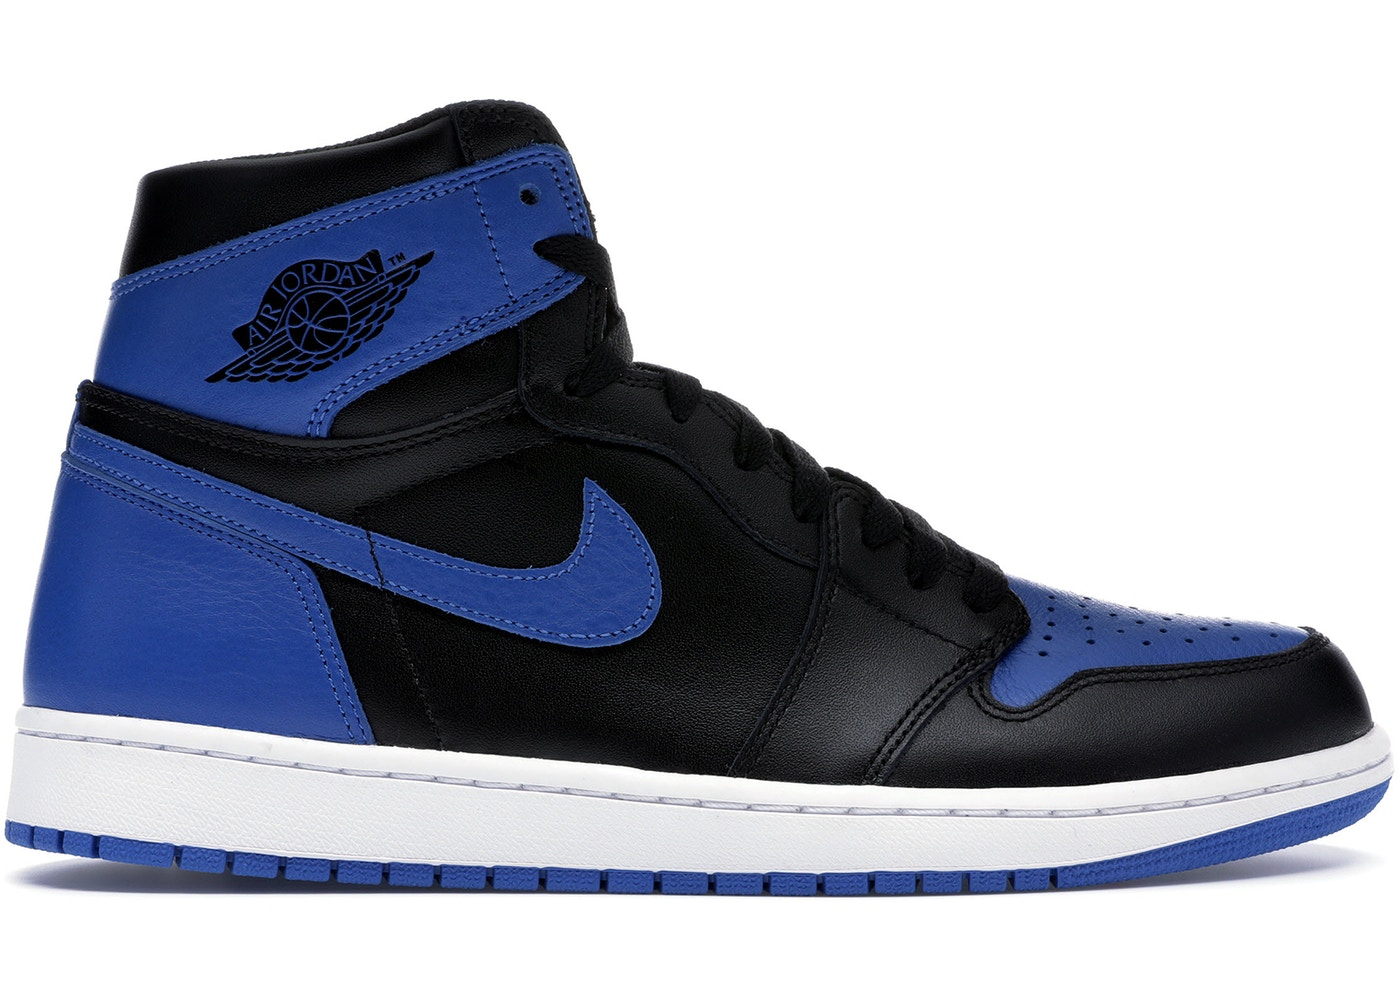 a33b3d31e9b7 Jordan 1 Retro Royal (2017) - 555088-007